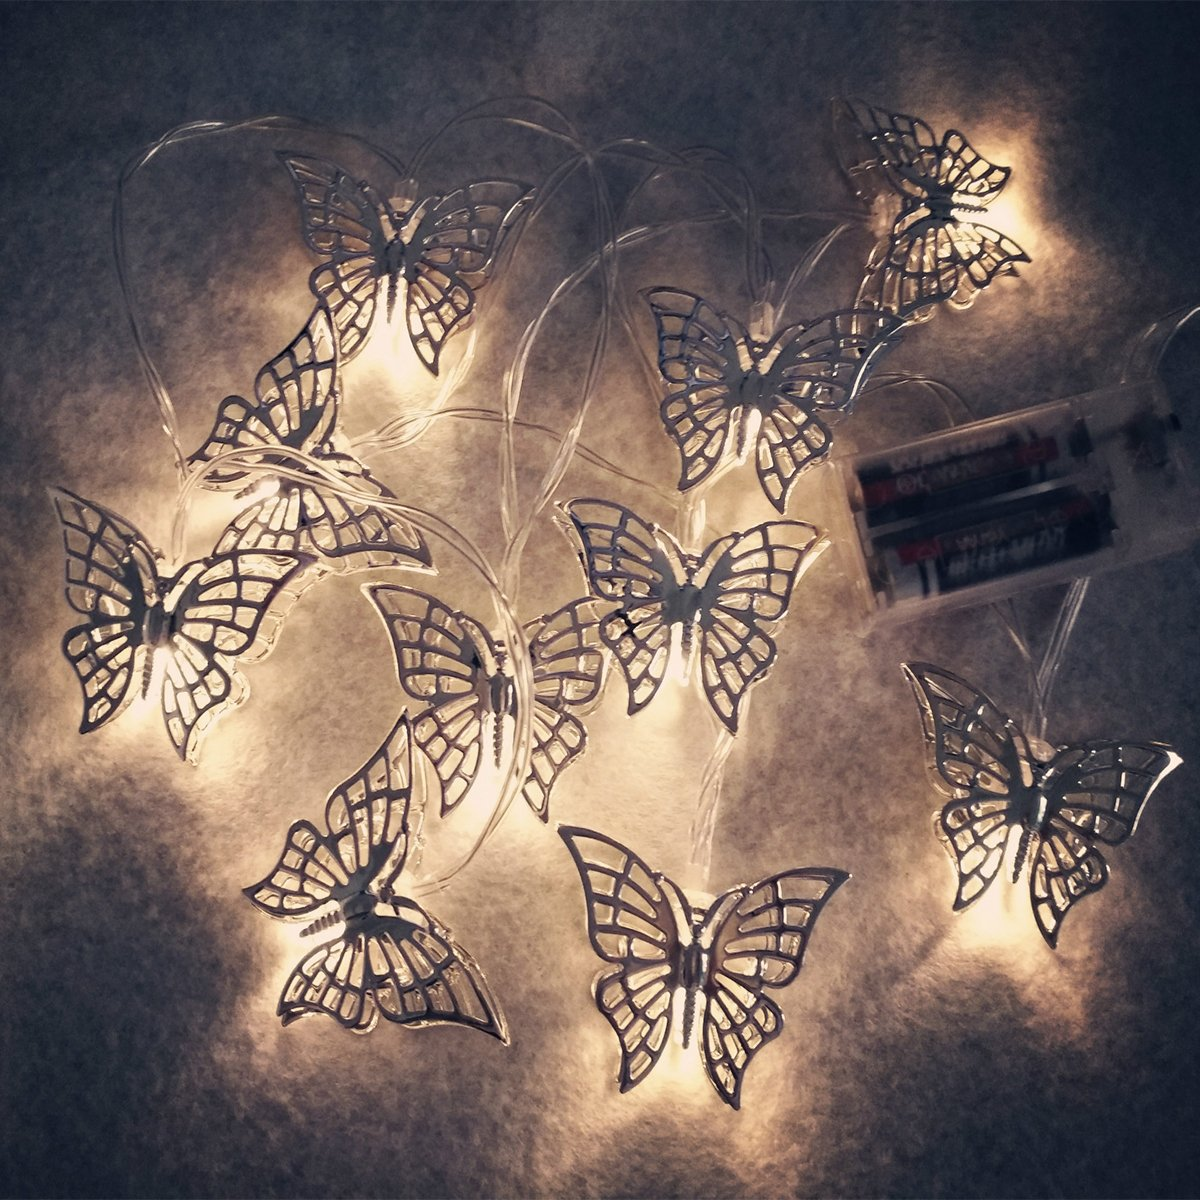 fantastic me 10ft 20 LED Iron Butterfly Fairy String Lights Night Lamp-Battery Powered-Decoration for Home Bedroom Kids Nursery Room Christmas Tree Wedding Party Garden by fantastic me (Image #4)